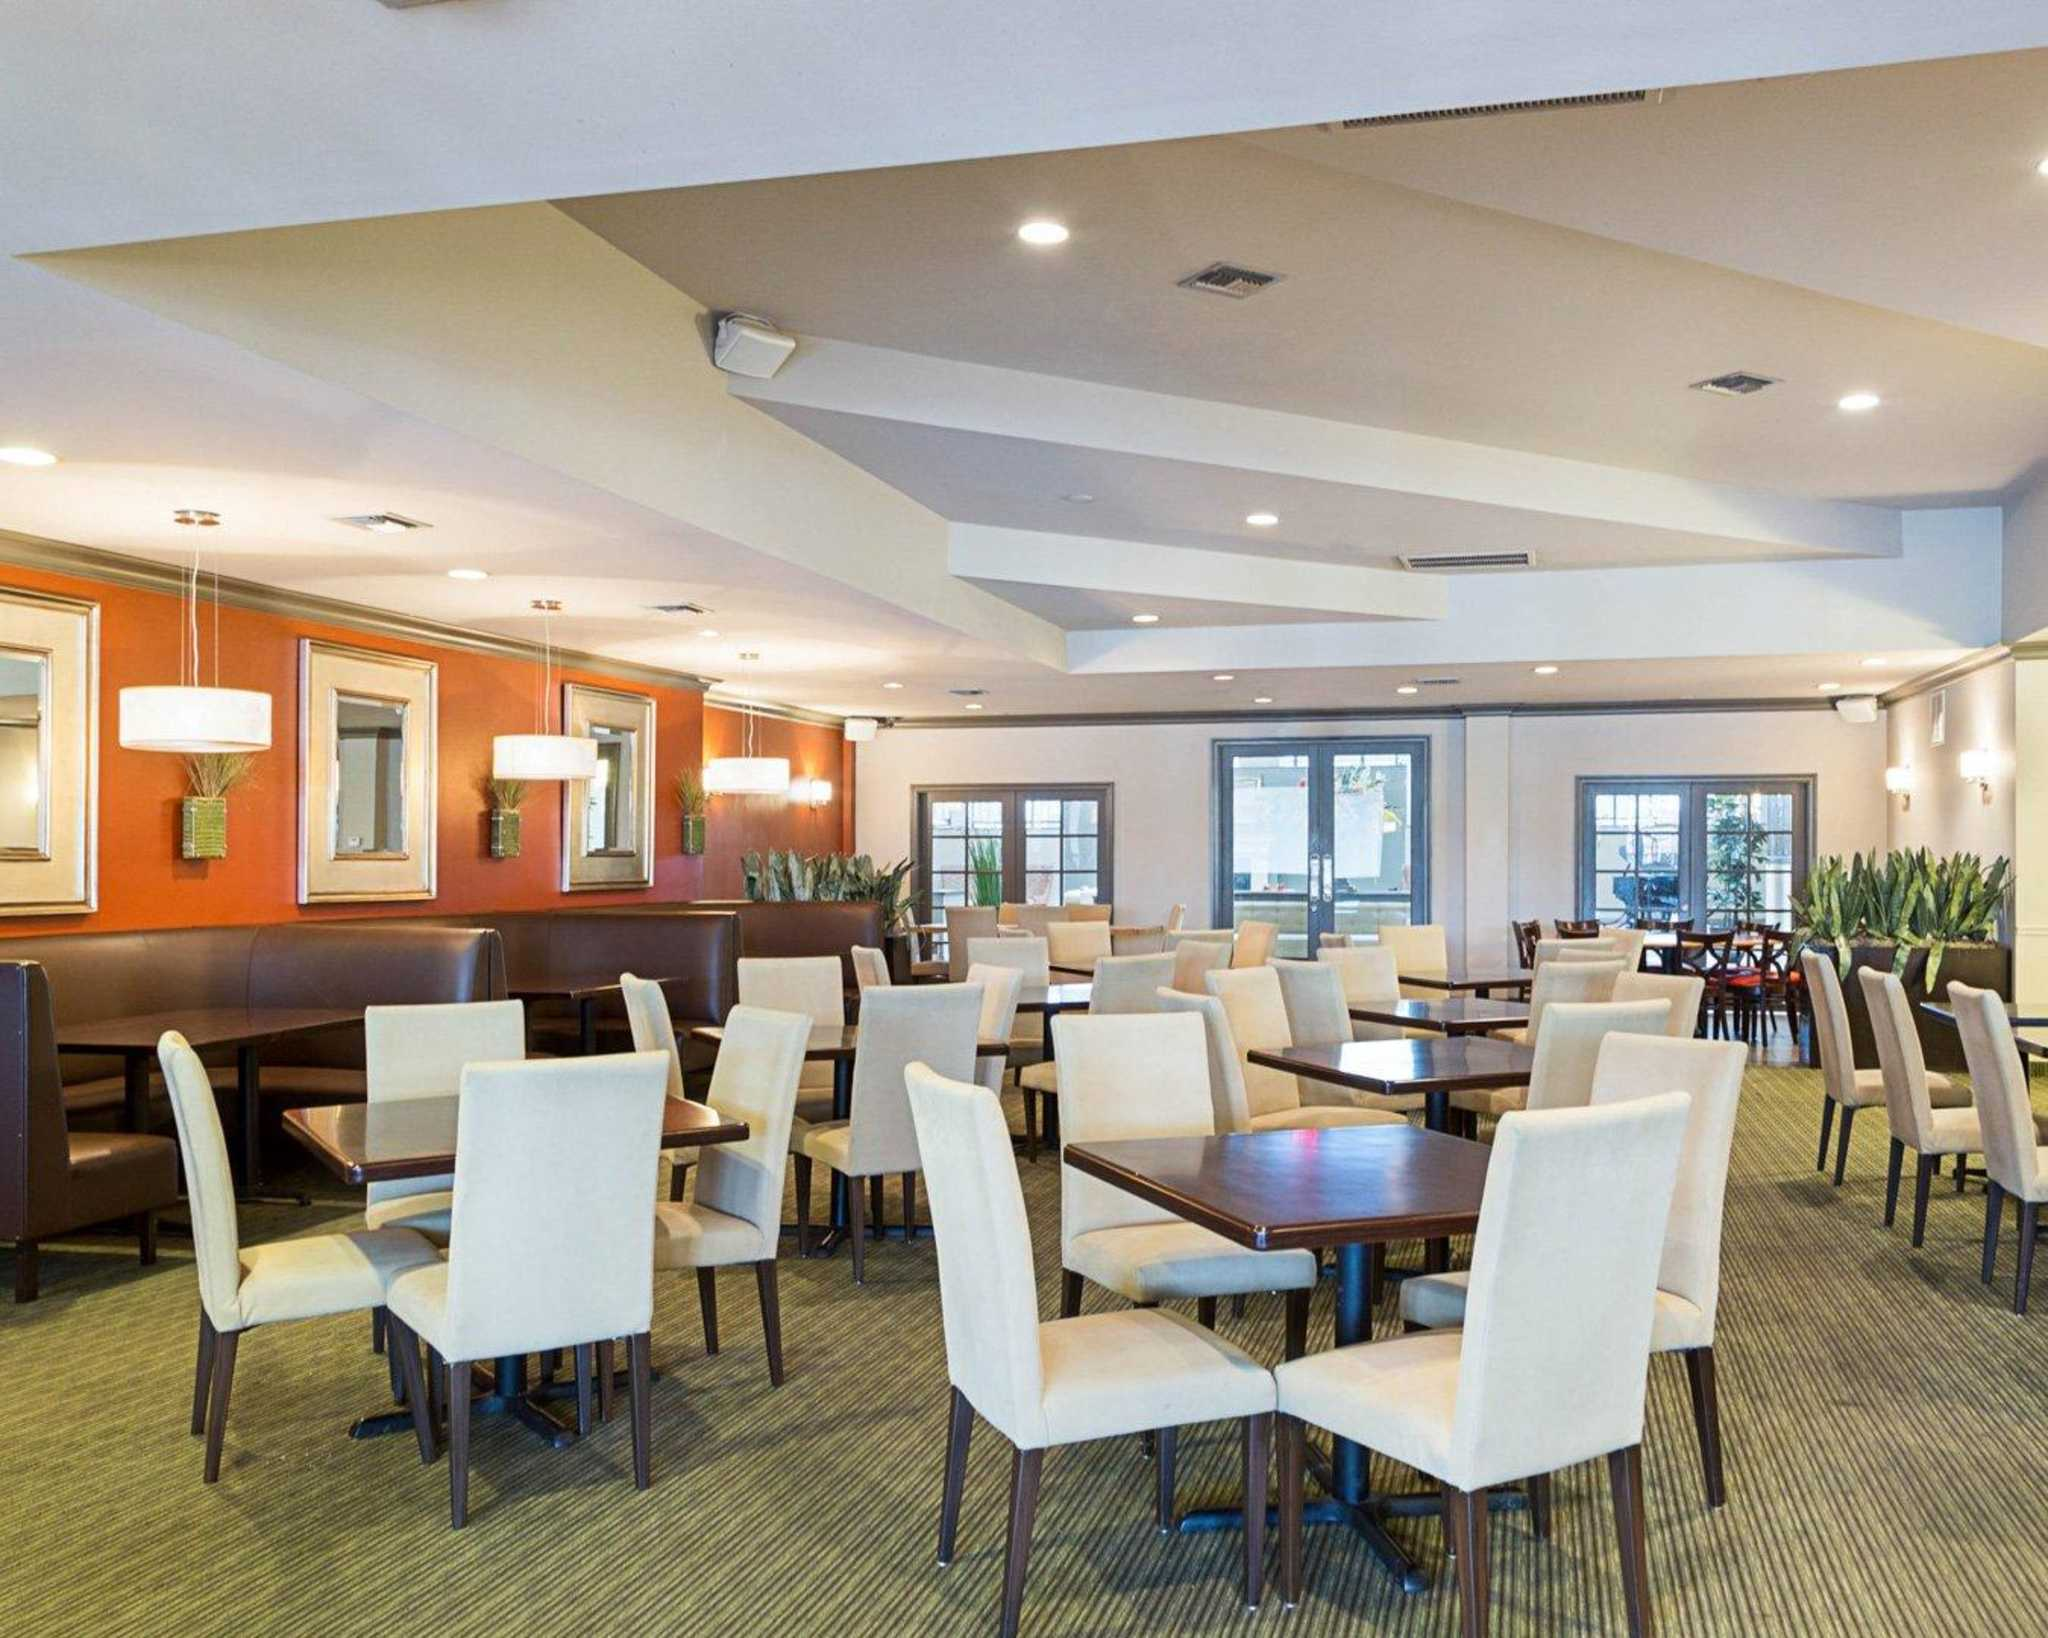 Clarion Inn Amp Suites Conference Center Coupons Near Me In